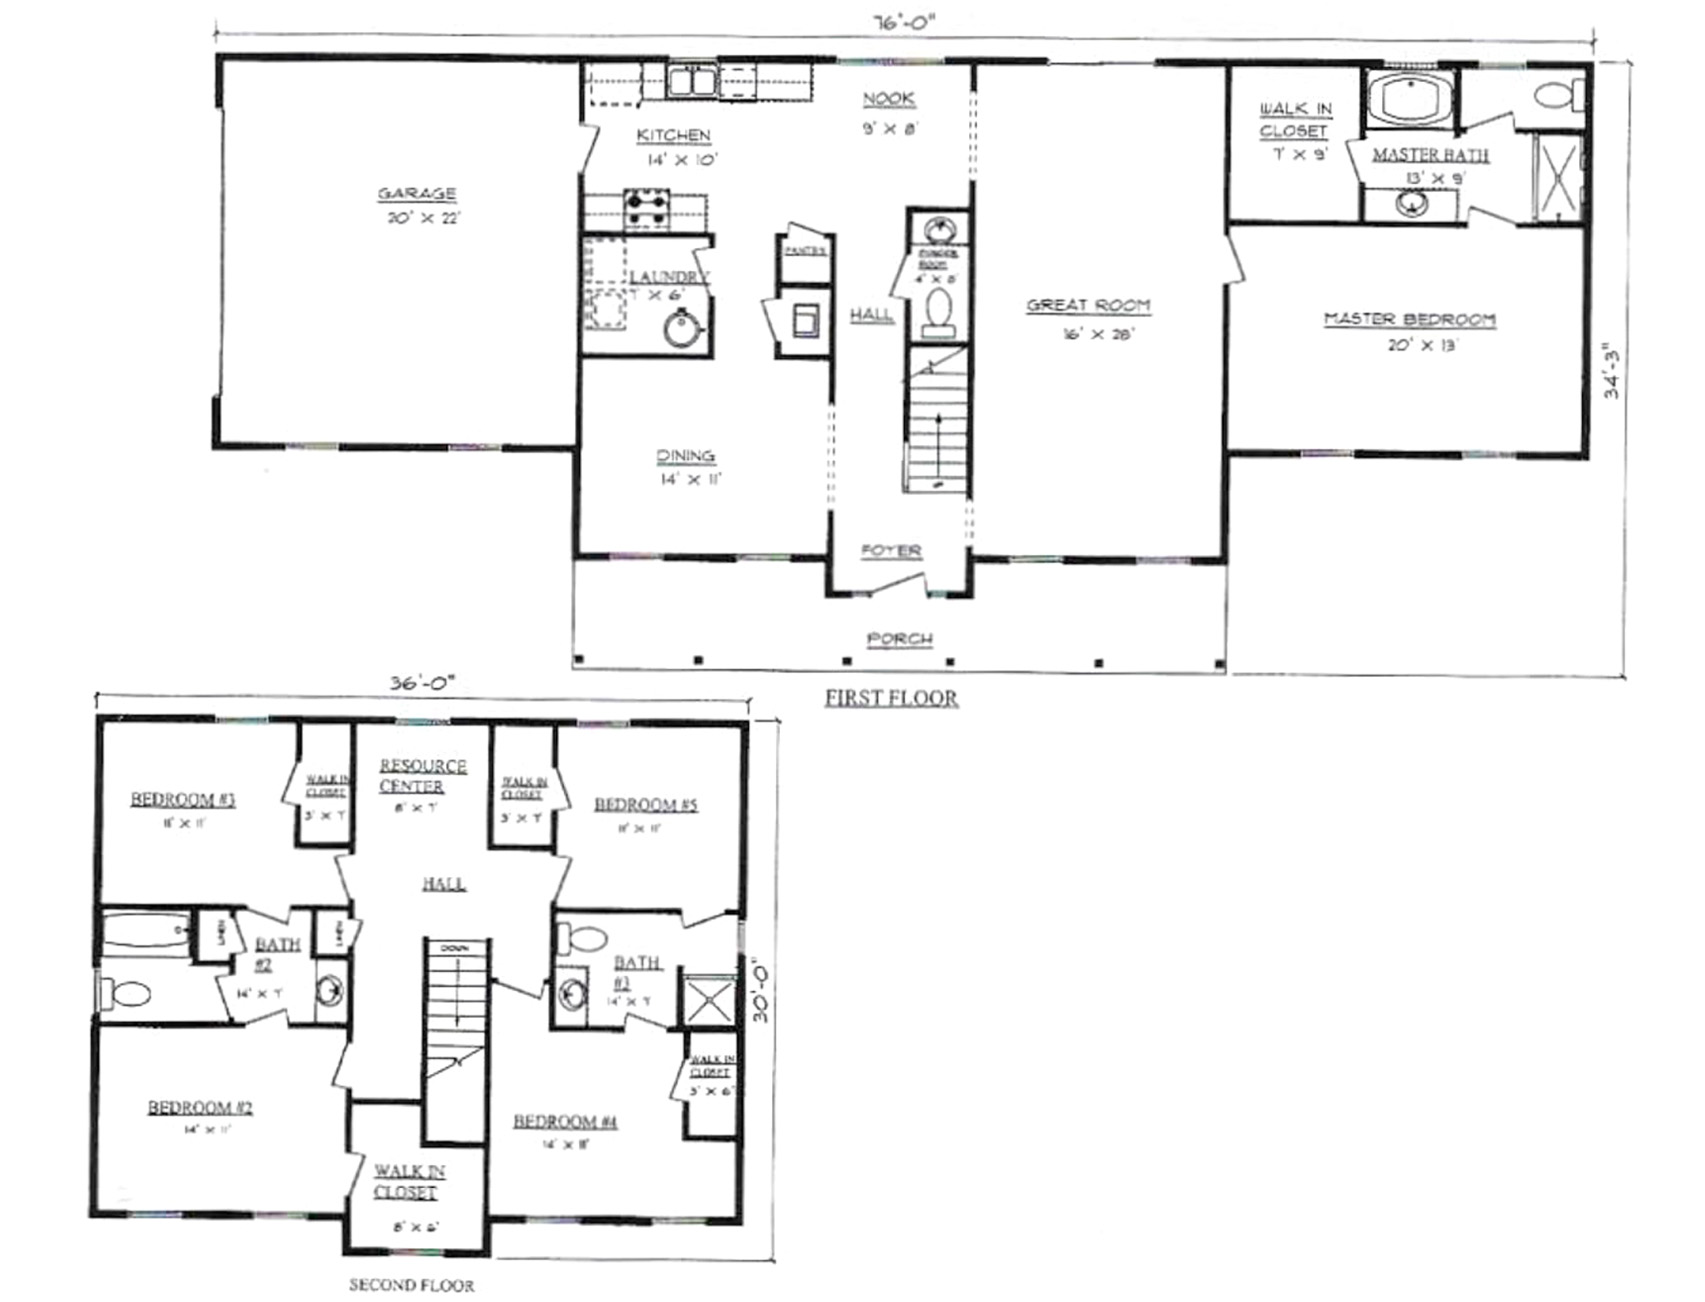 Plans for Munsbury Grand B Pennyworth Homes Tallahassee Home Builder